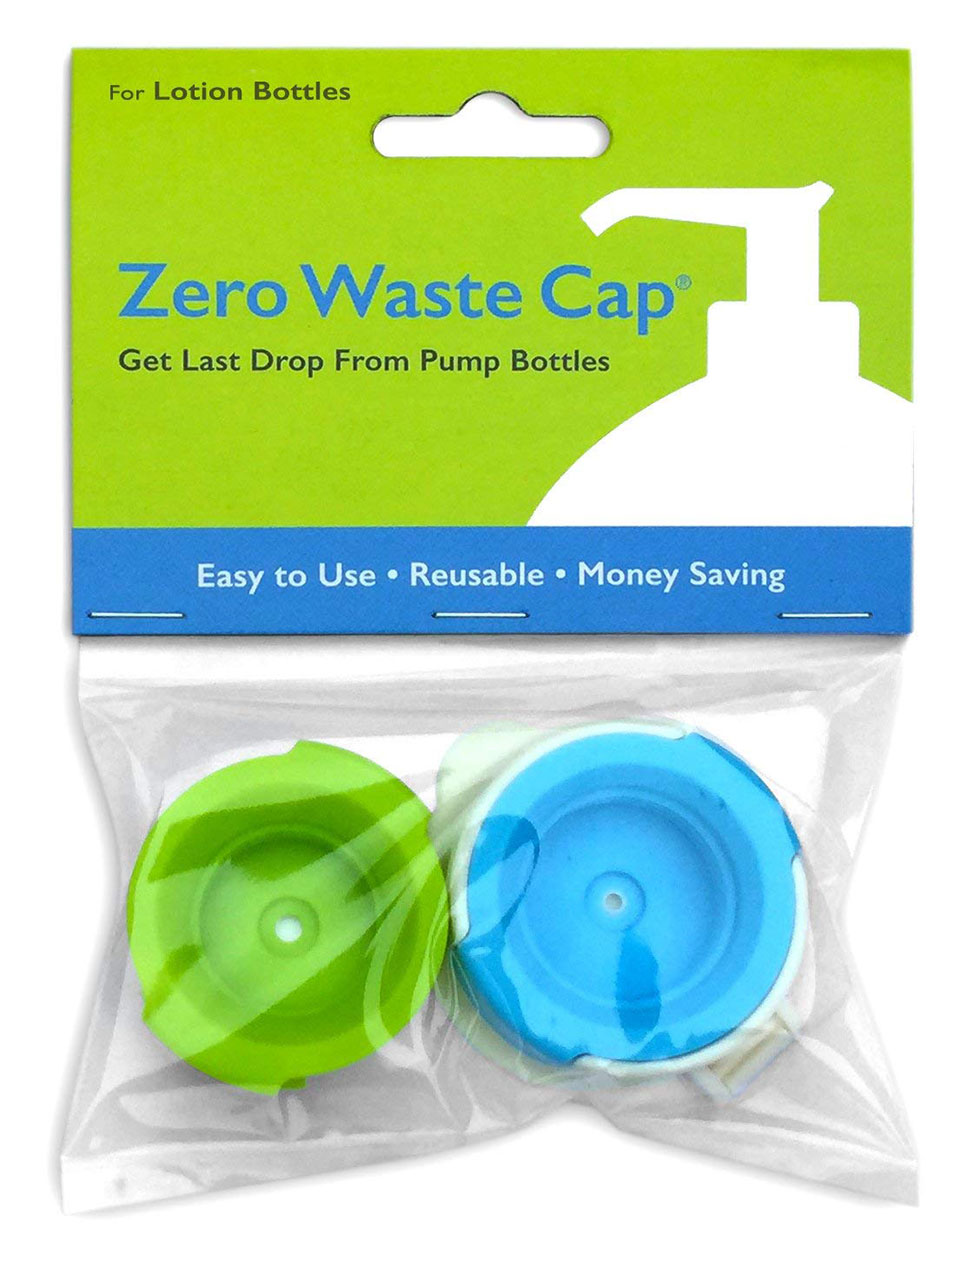 The Zero Waste Cap Will Let You Get The Last Bit From